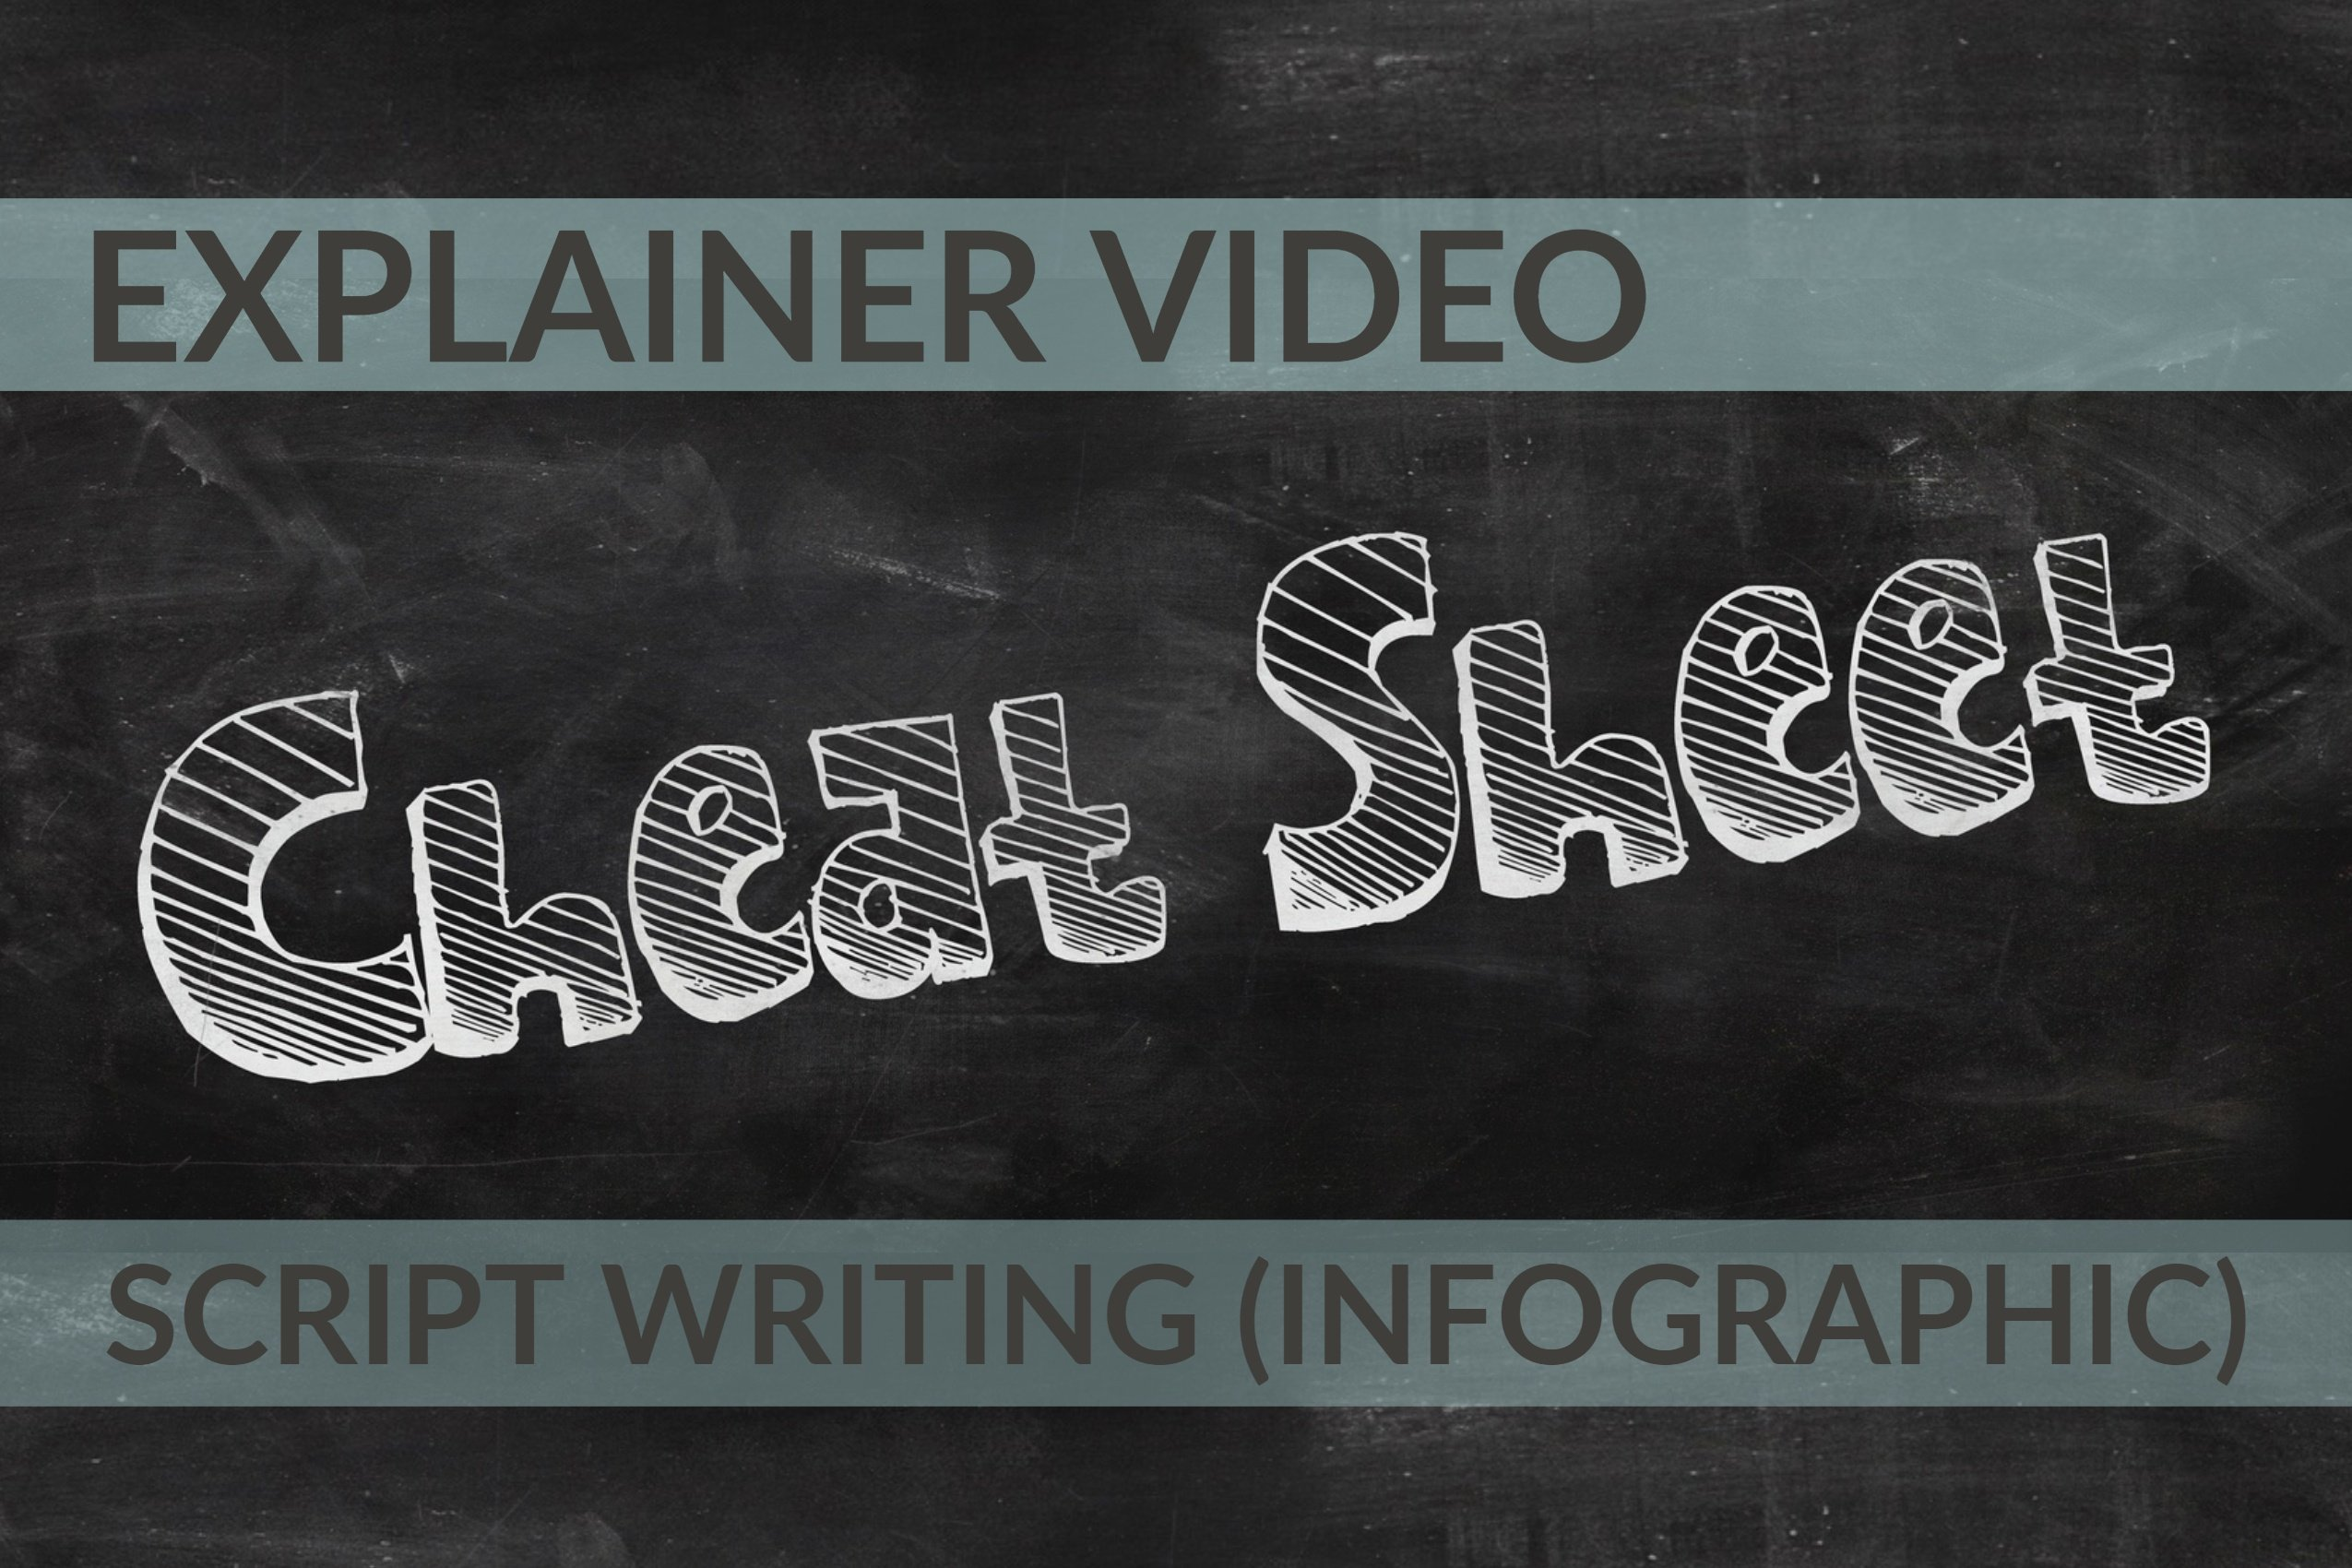 Explainer Video Cheat Sheet_ Script Writing (infographic)